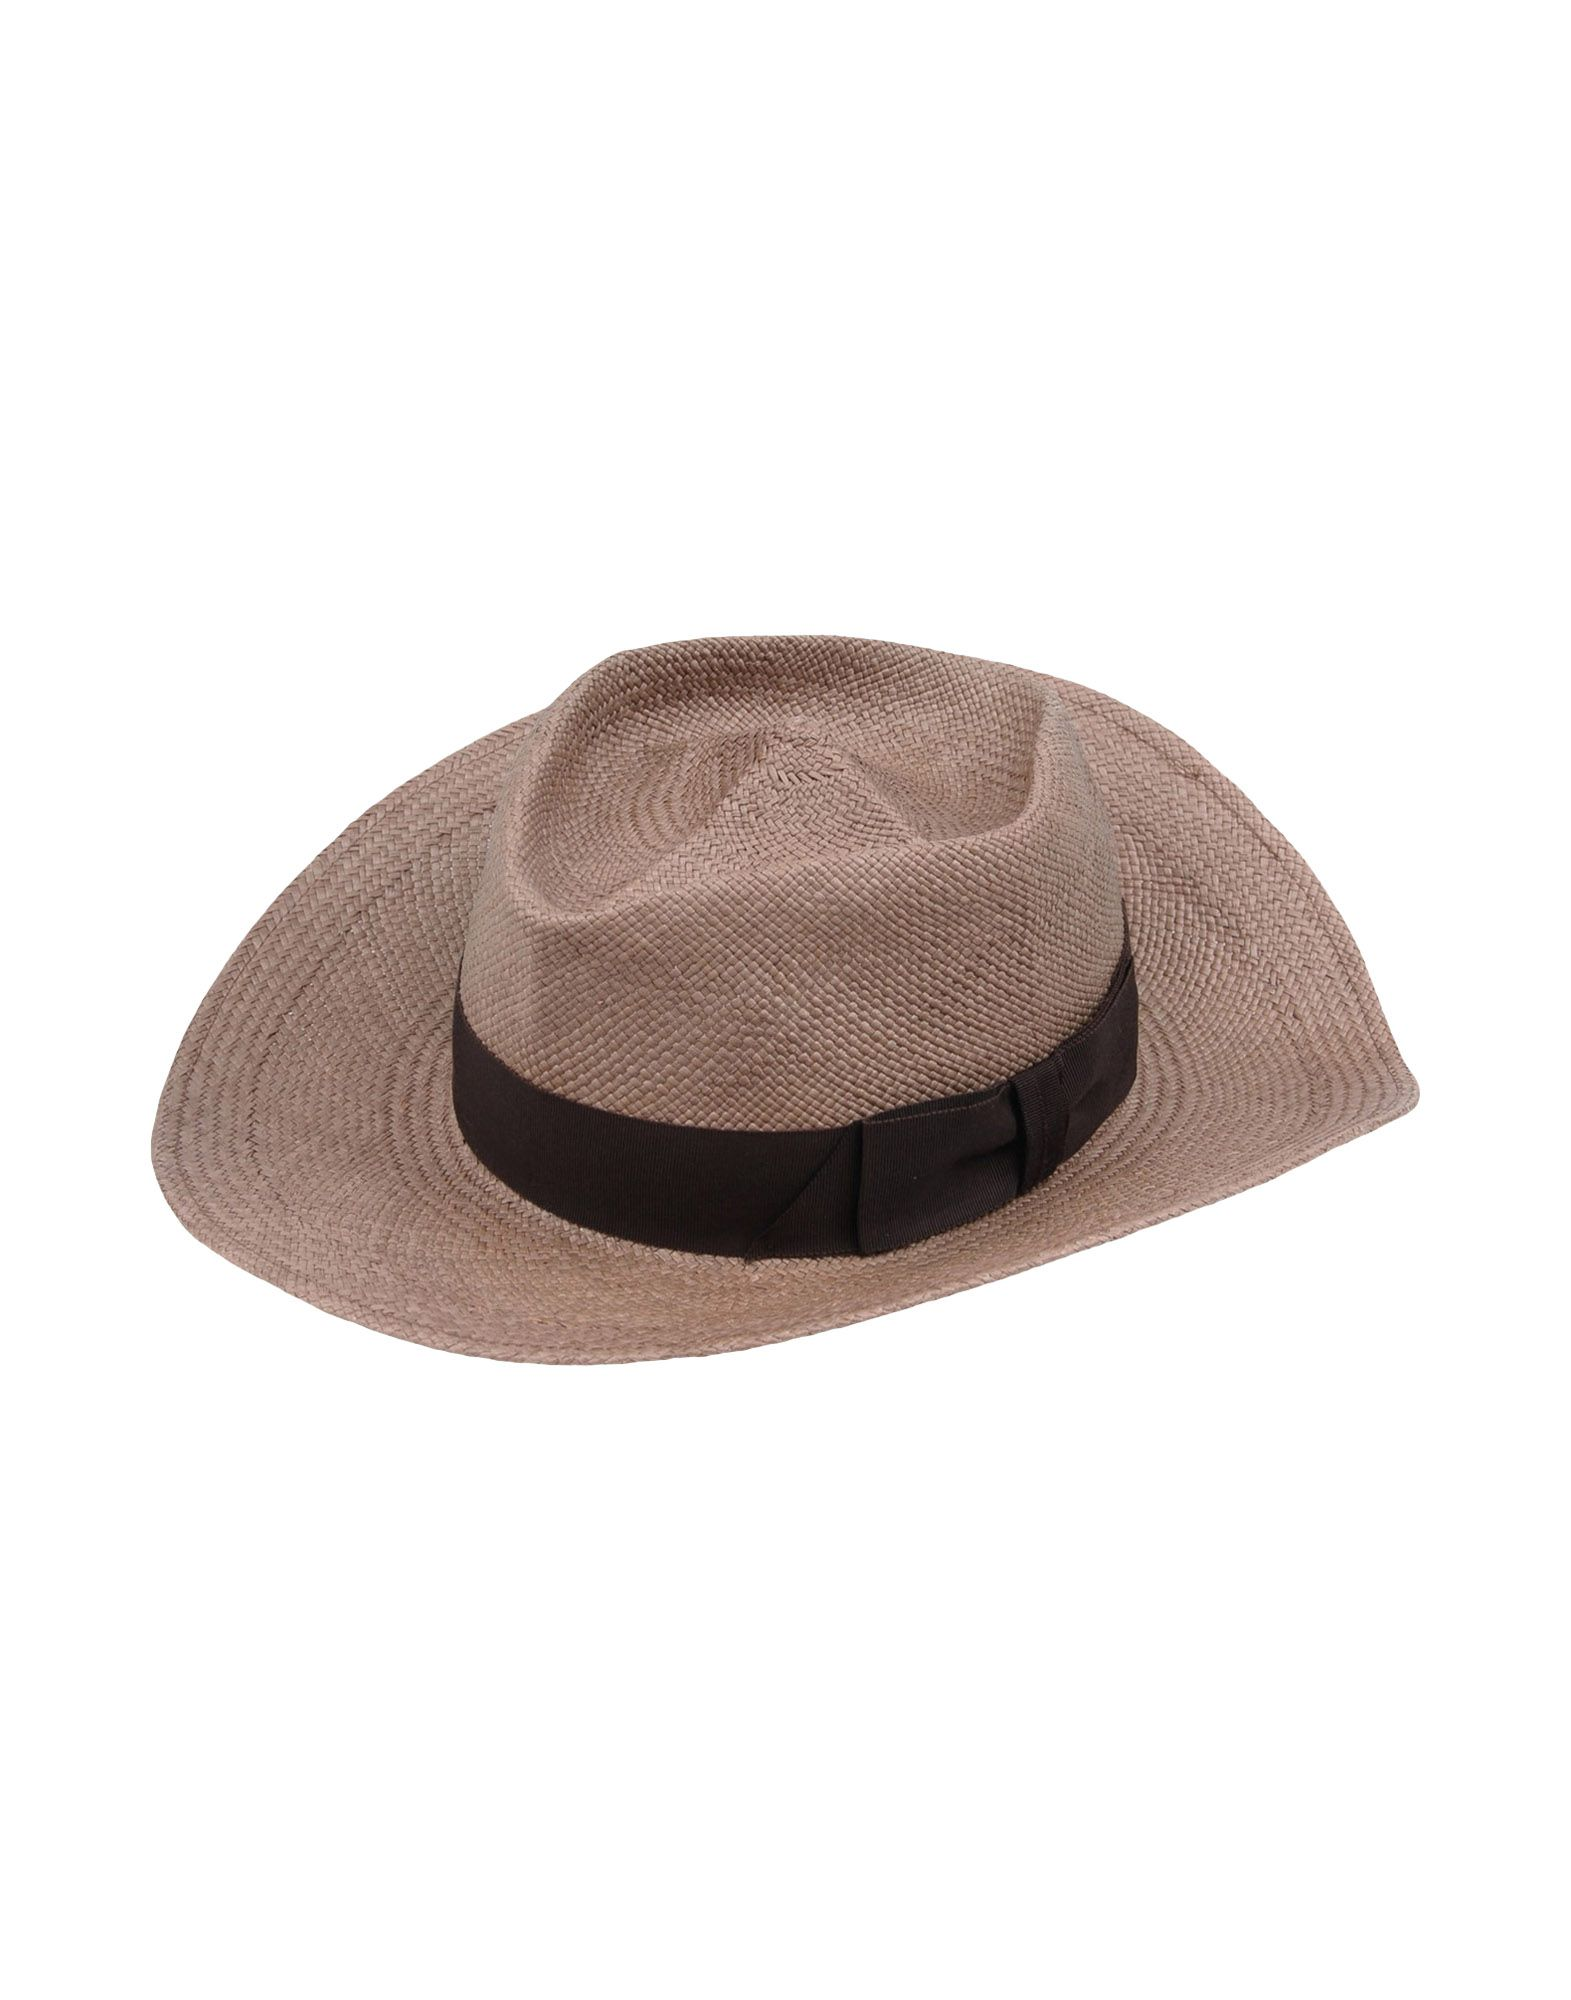 GLADYS TAMEZ Hat in Khaki